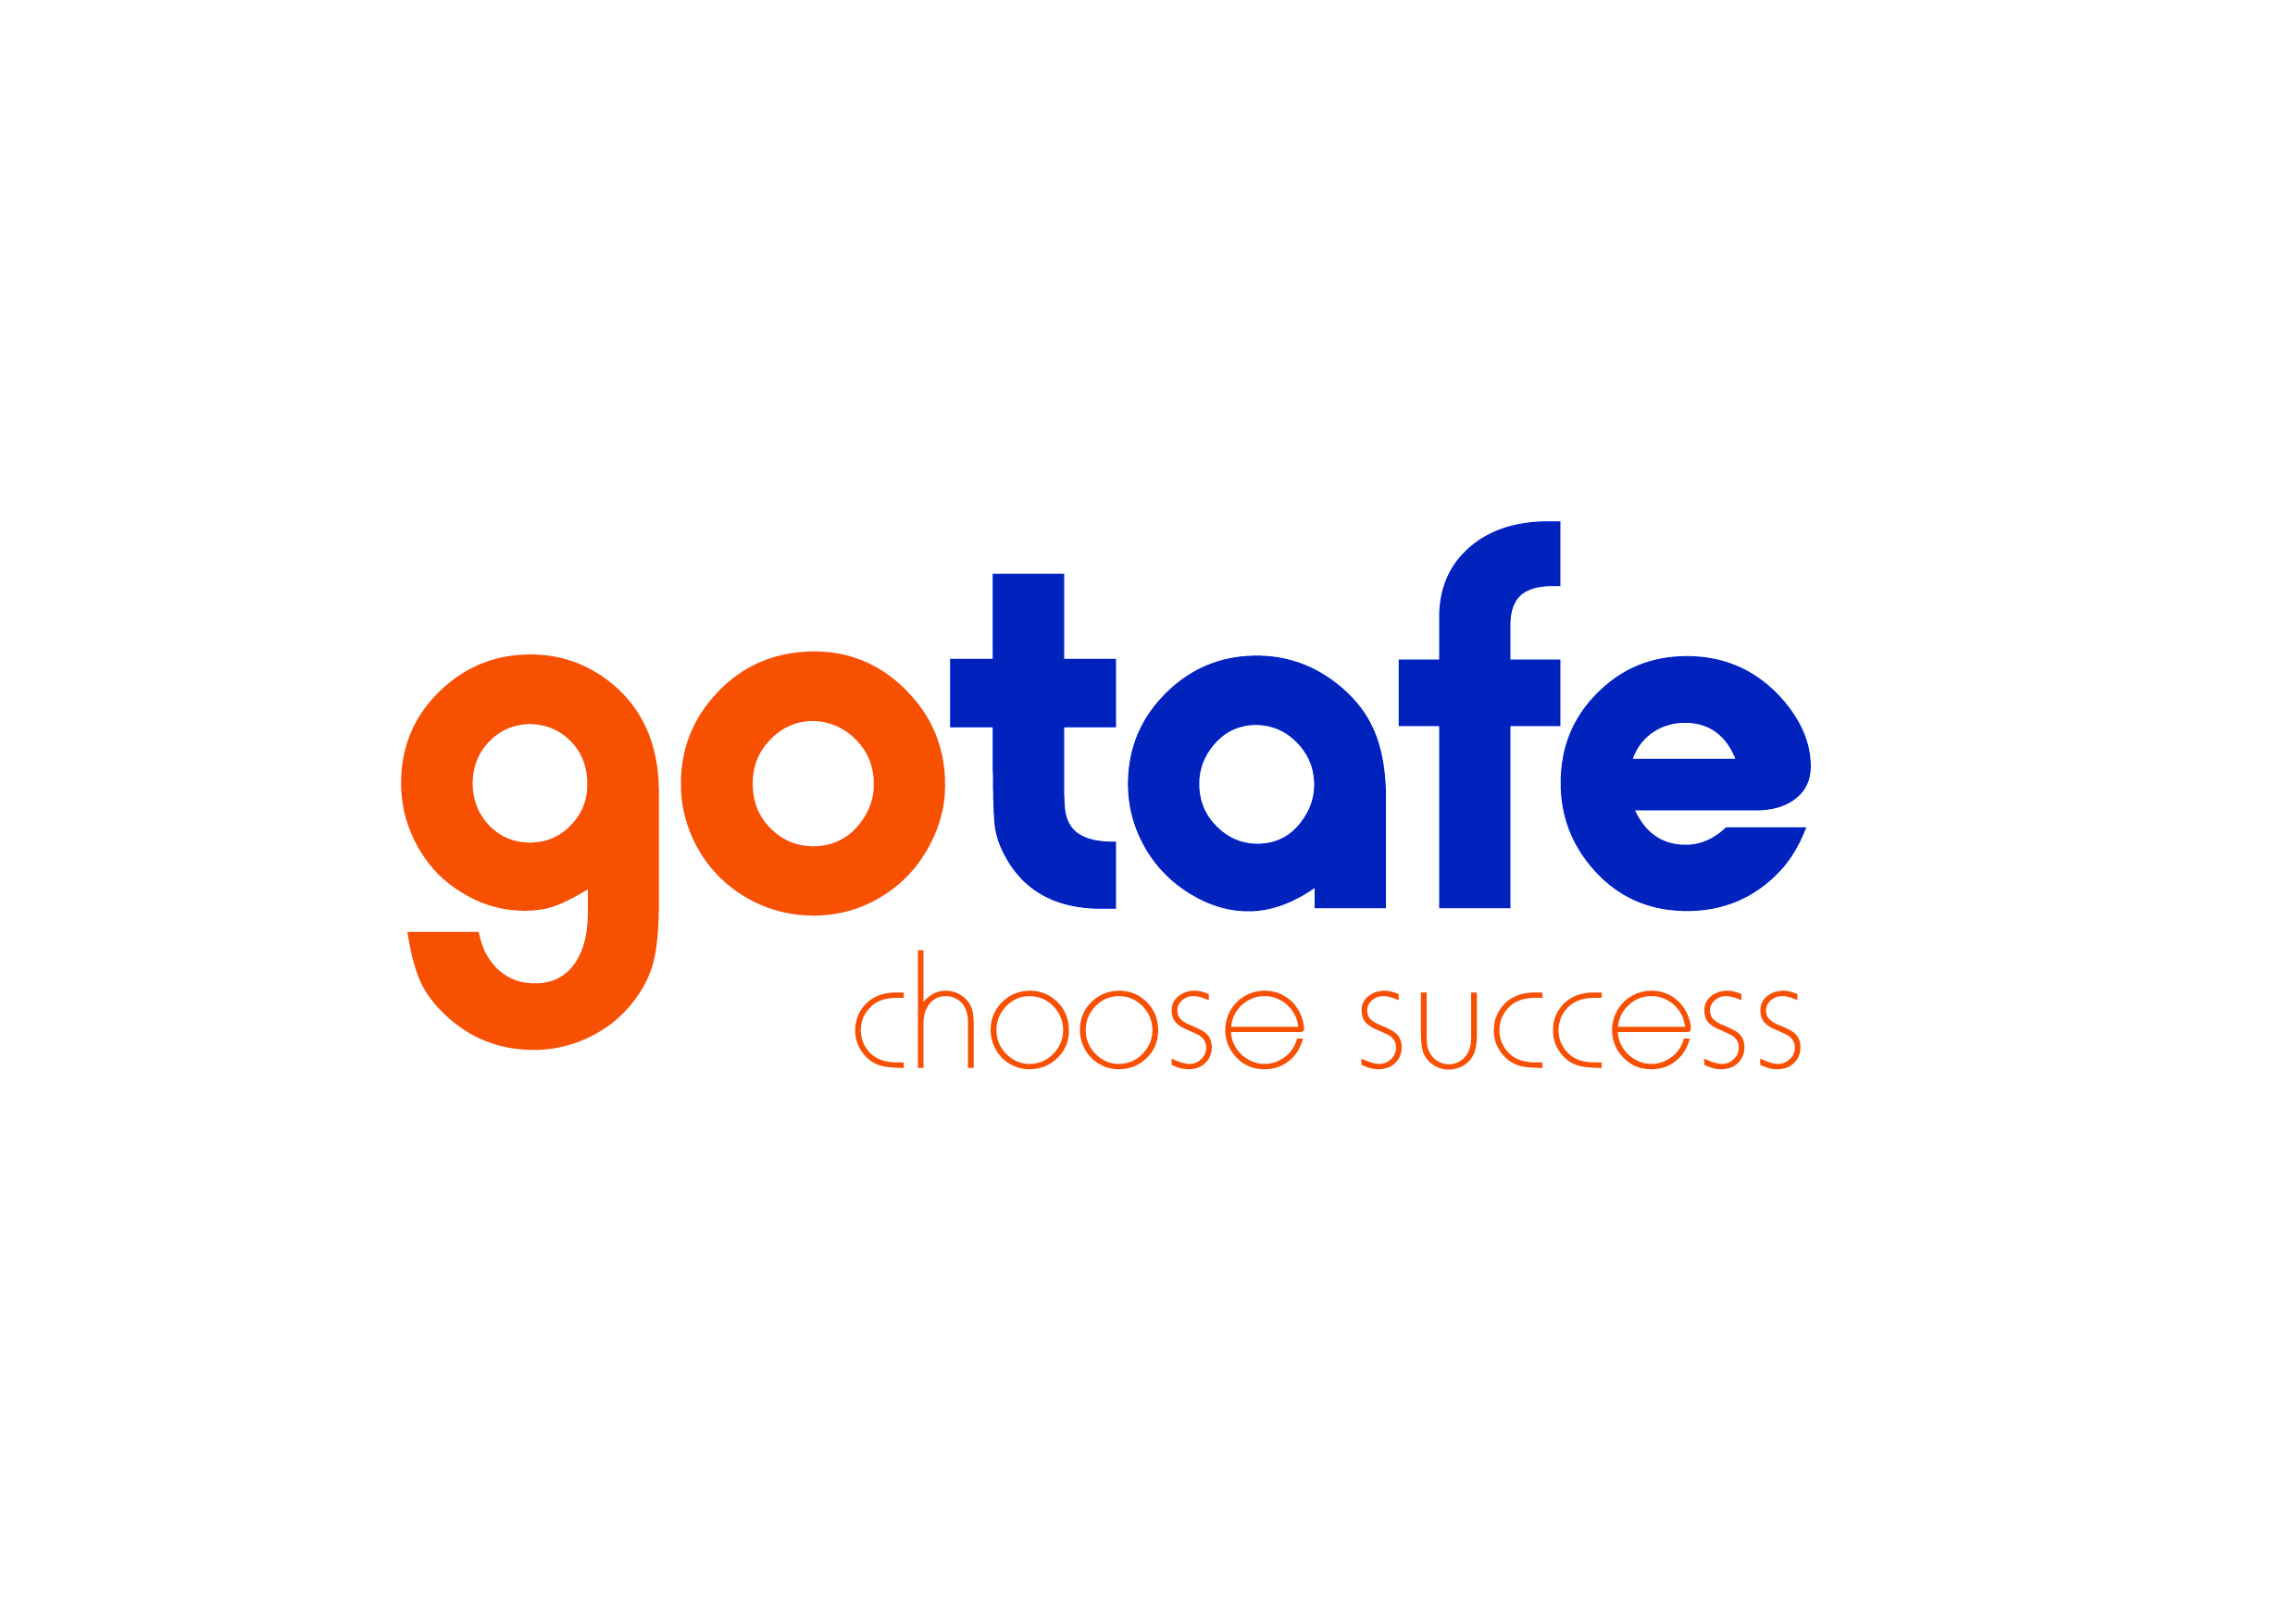 gotafe logo tagline no shadow.jpg